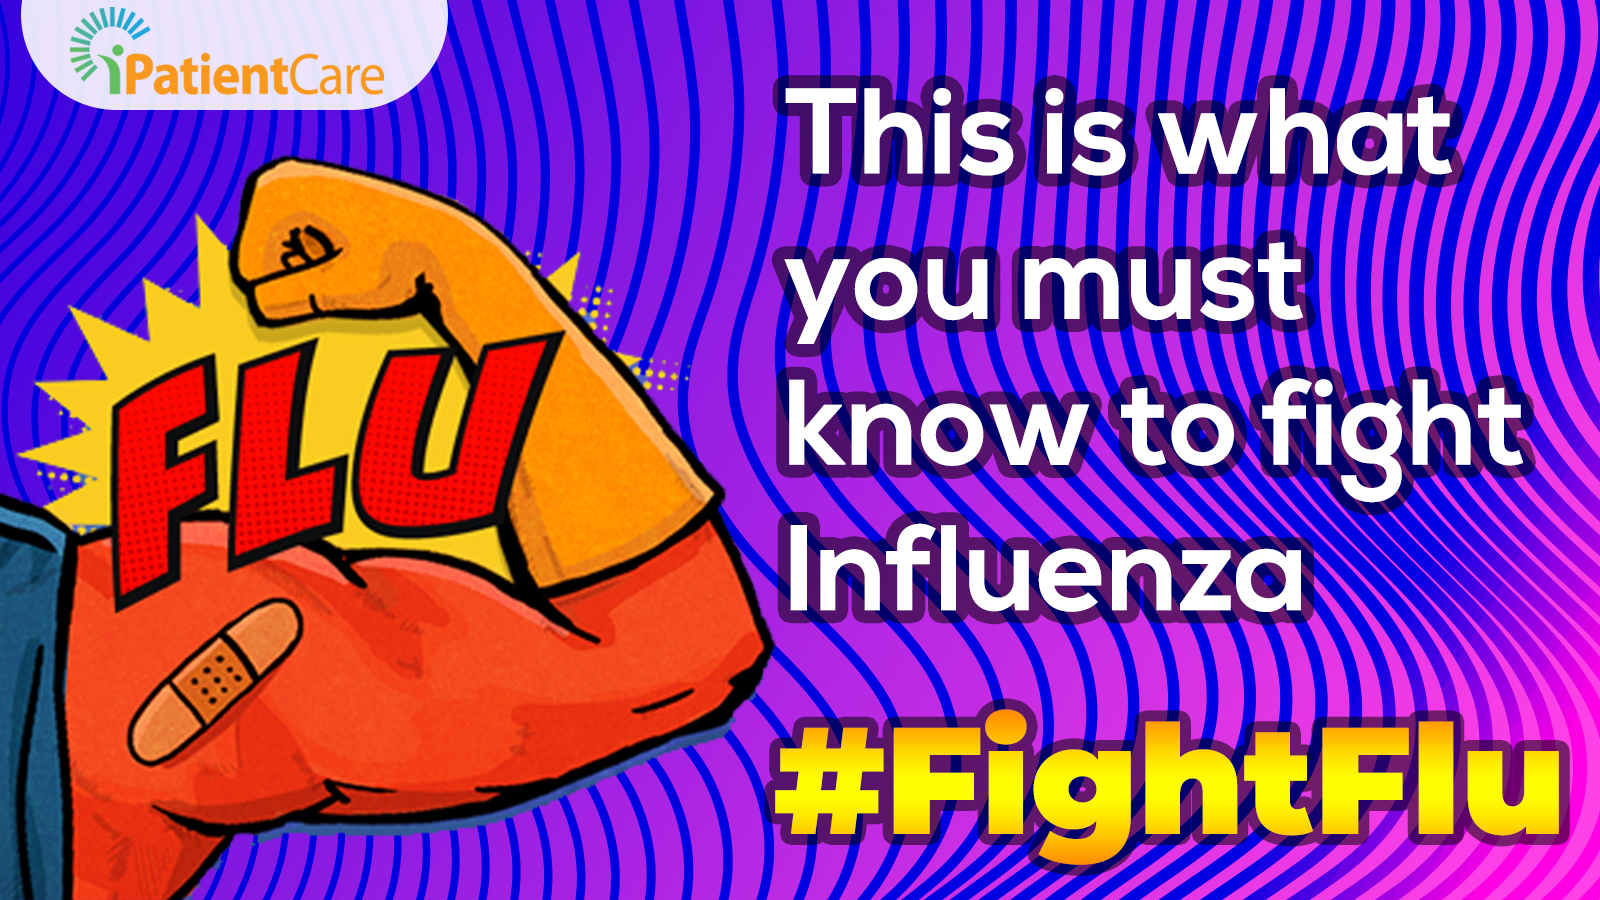 iPatientCare Blog - This is what you must know to fight Influenza #FightFlu